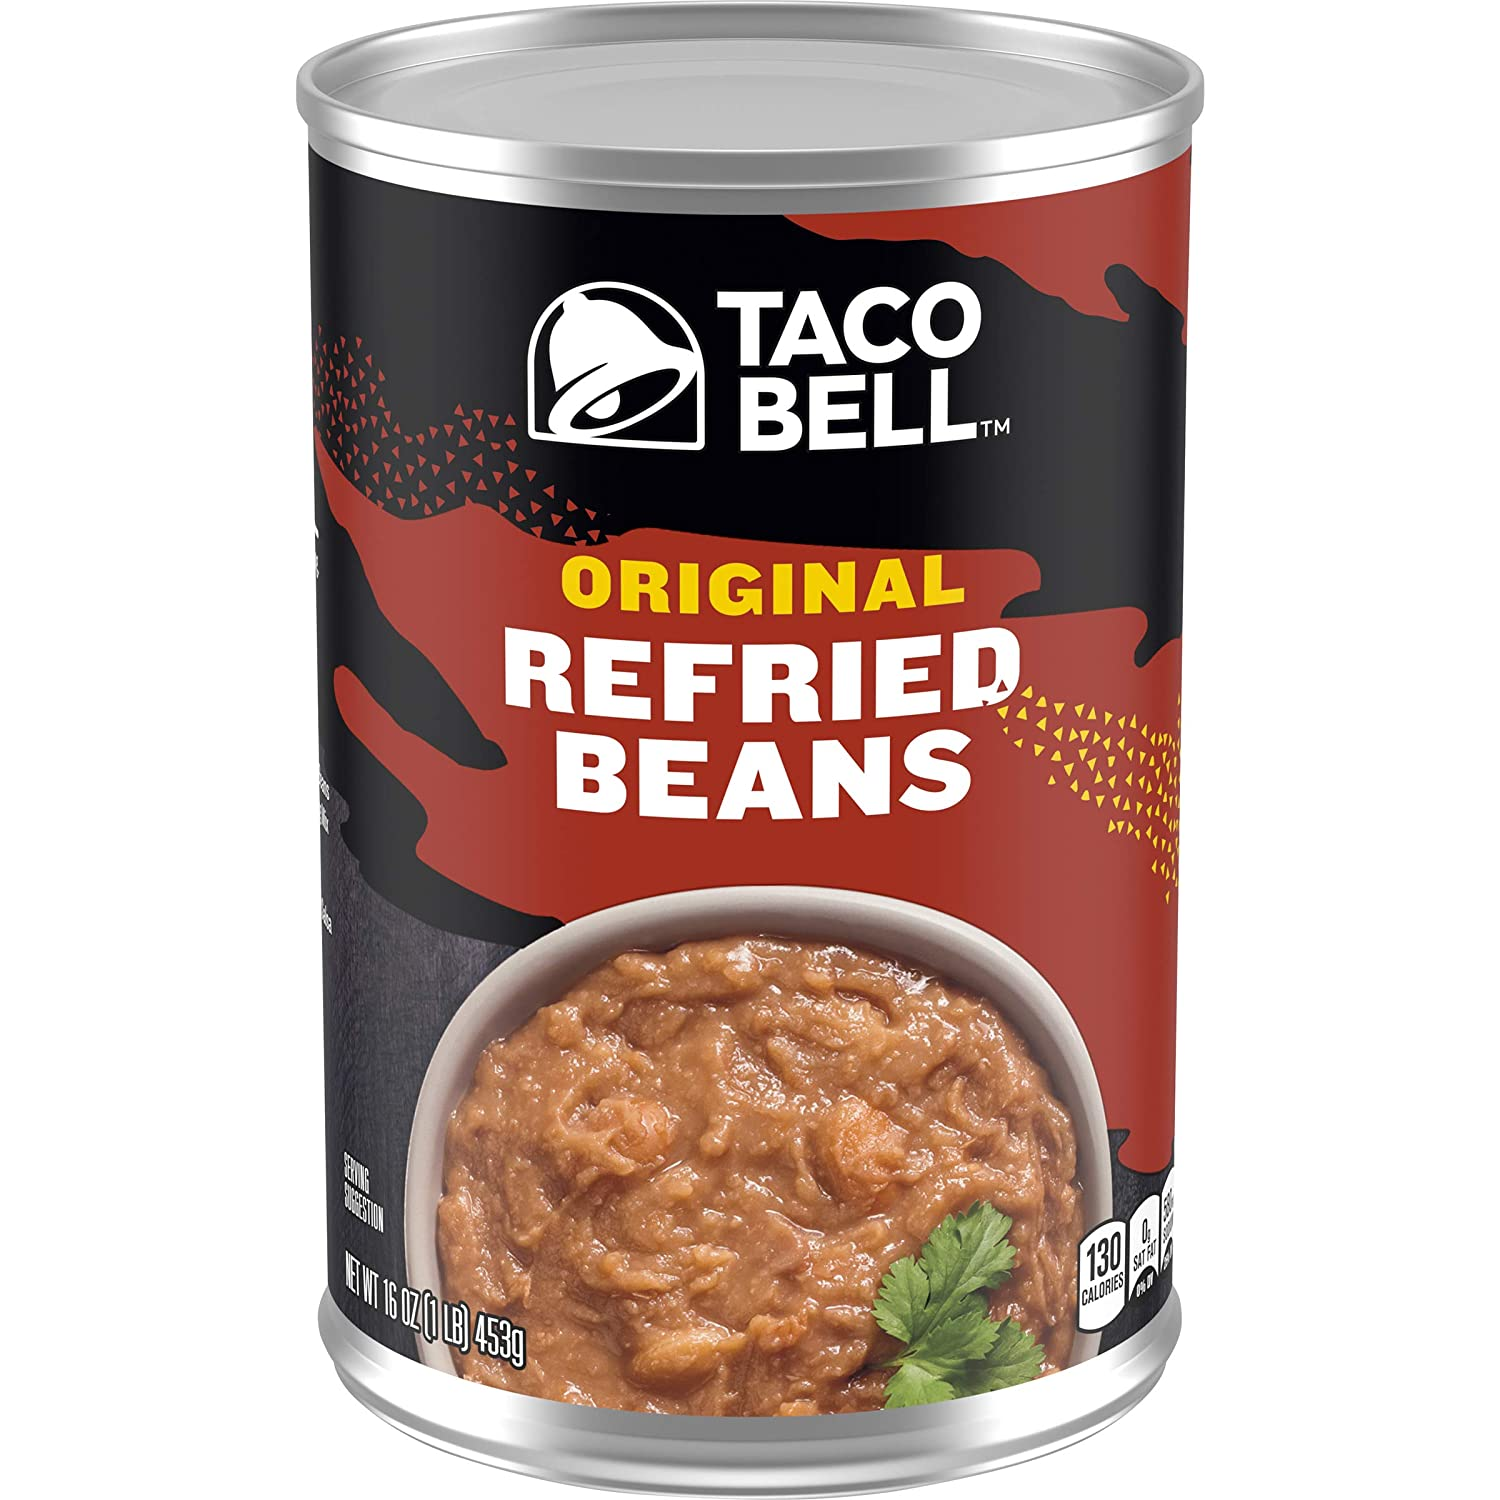 Taco Bell Original Refried Beans, 16 oz Can (Pack of 12)